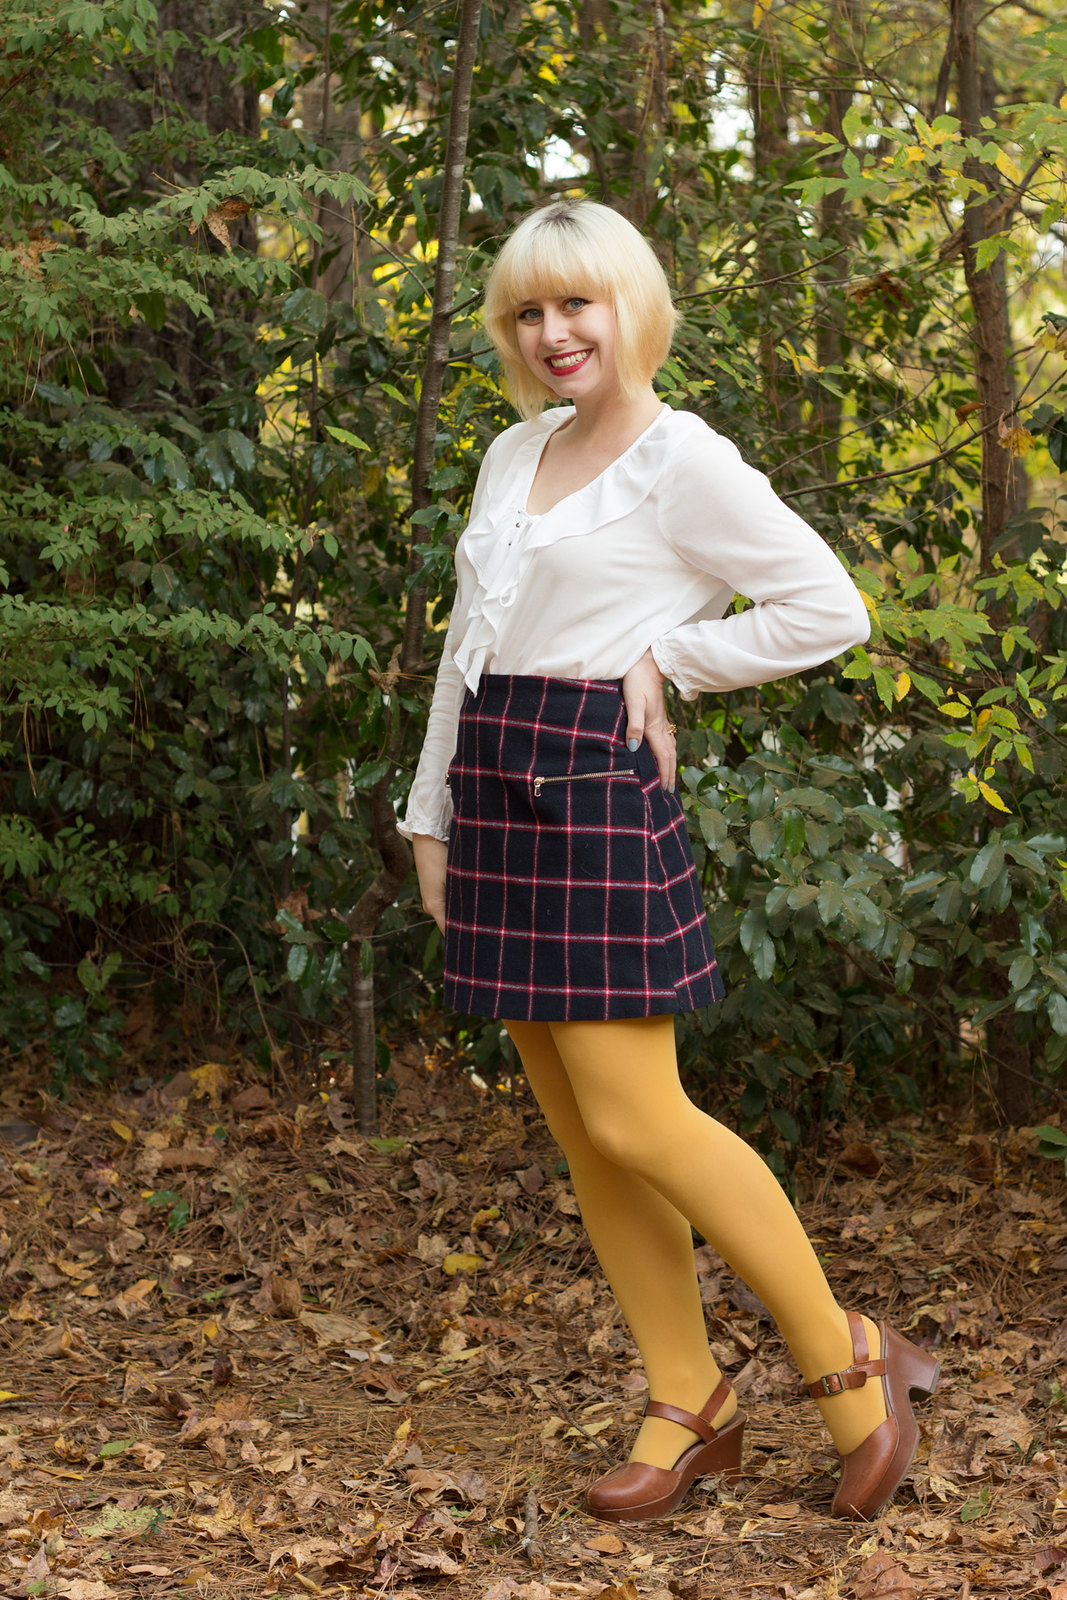 White Ruffled and Lace Up Shirt Plaid Mini Skirt Yellow Tights Clogs